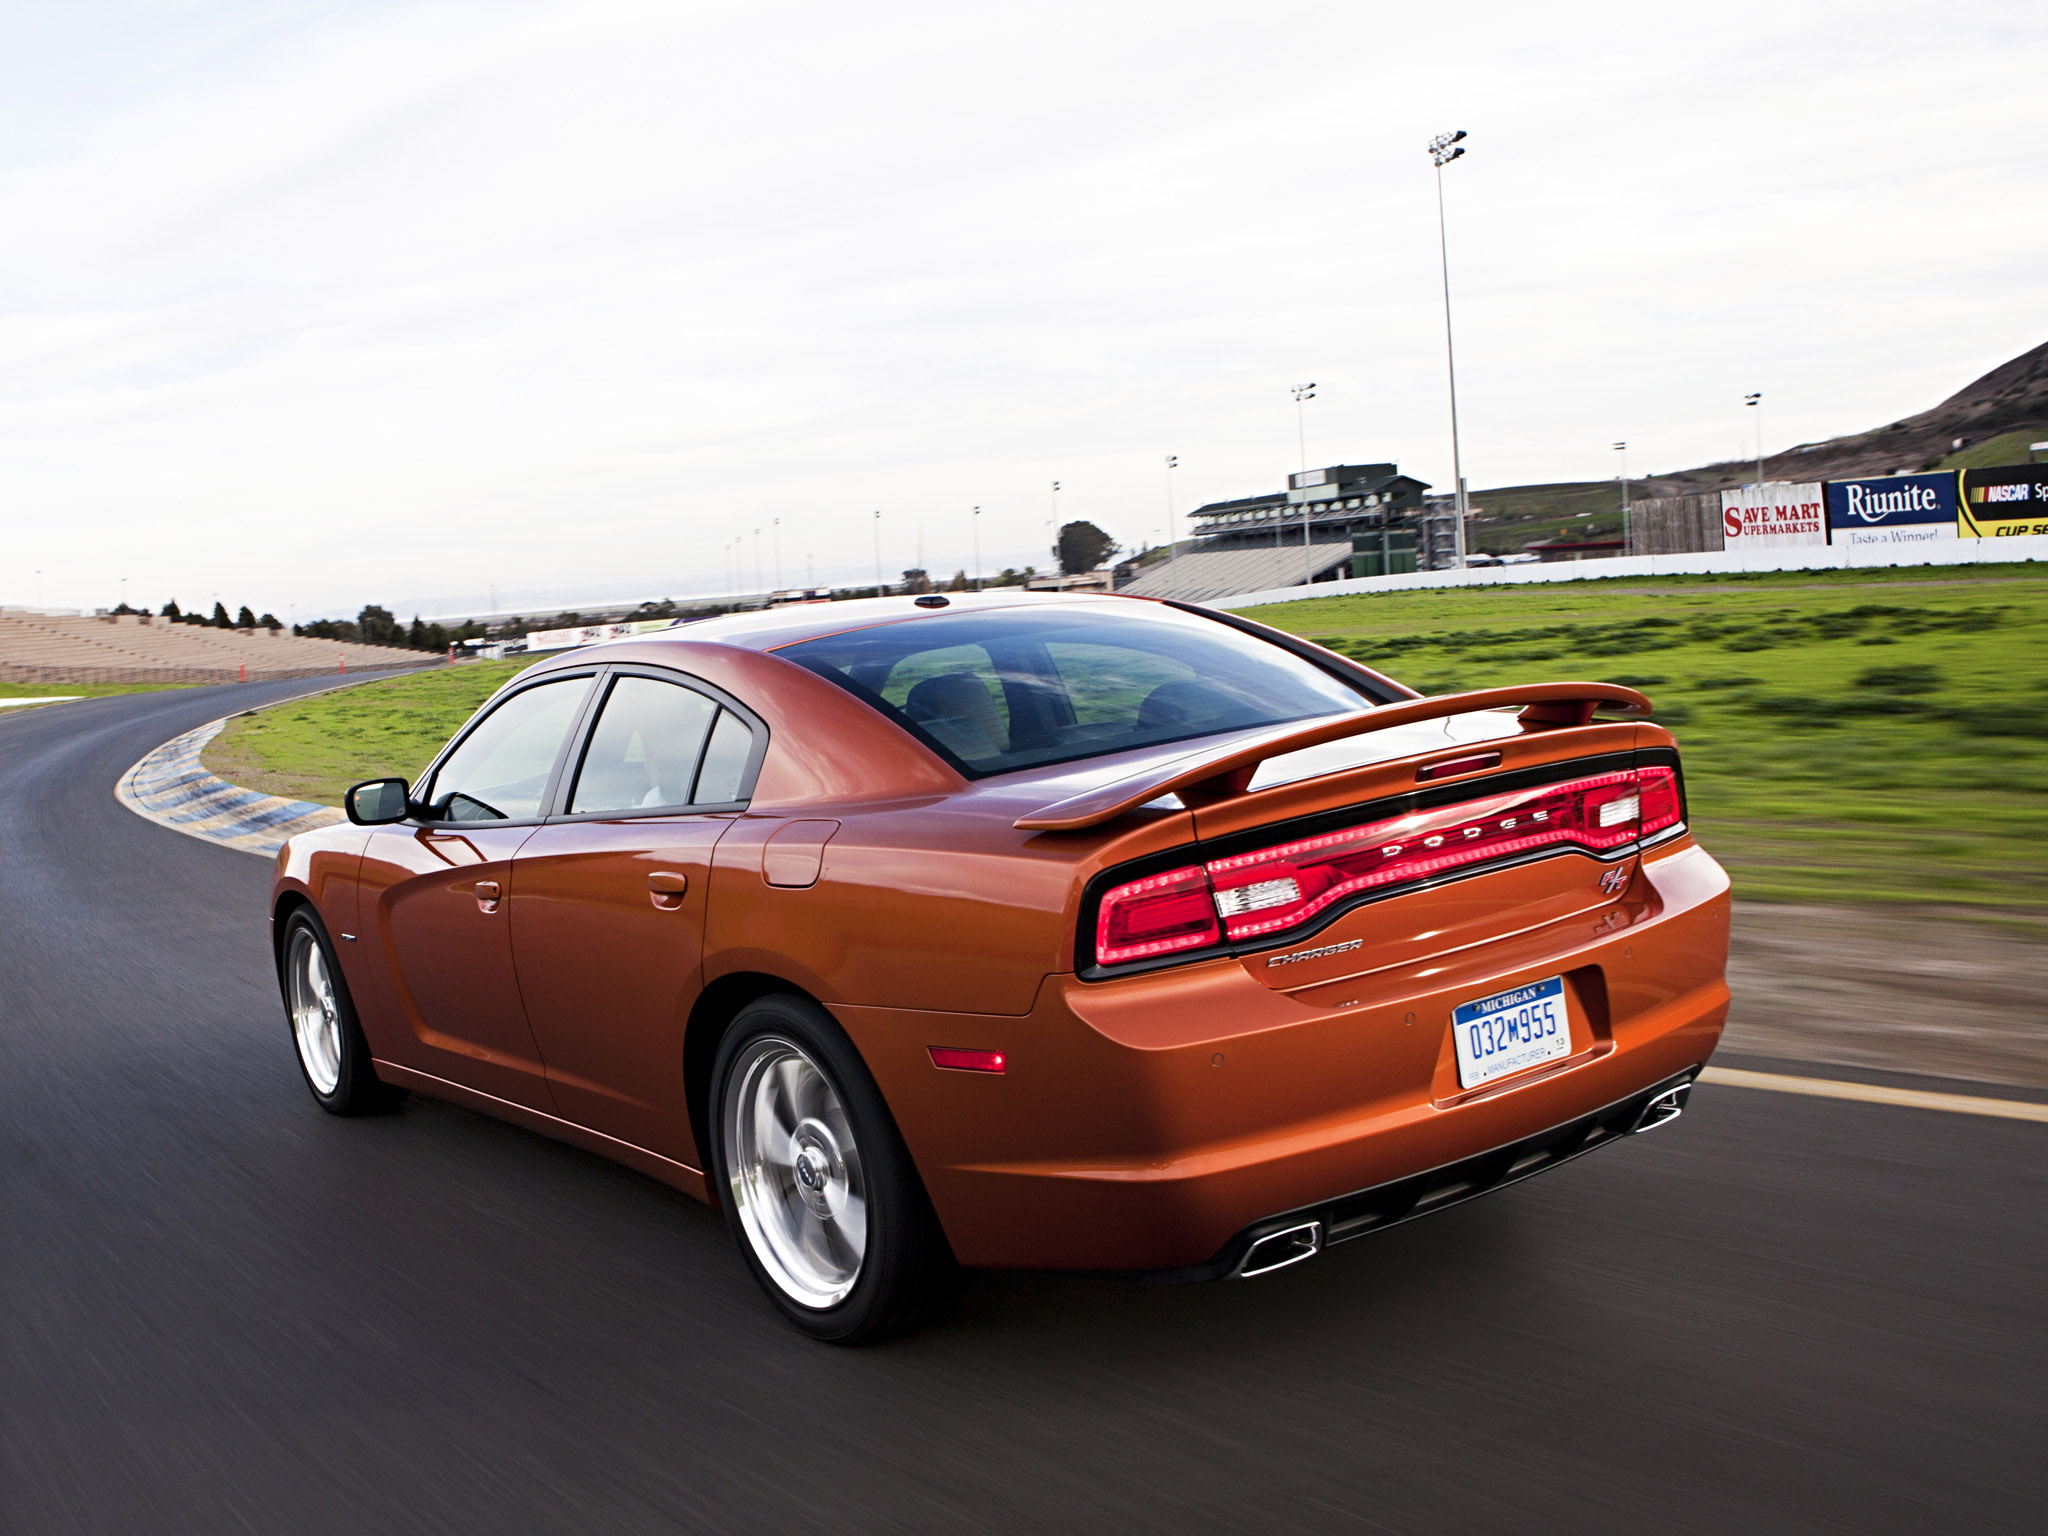 dodge charger rt 2010 dodge charger rt 2010 photo 10 car in pictures car photo gallery. Black Bedroom Furniture Sets. Home Design Ideas